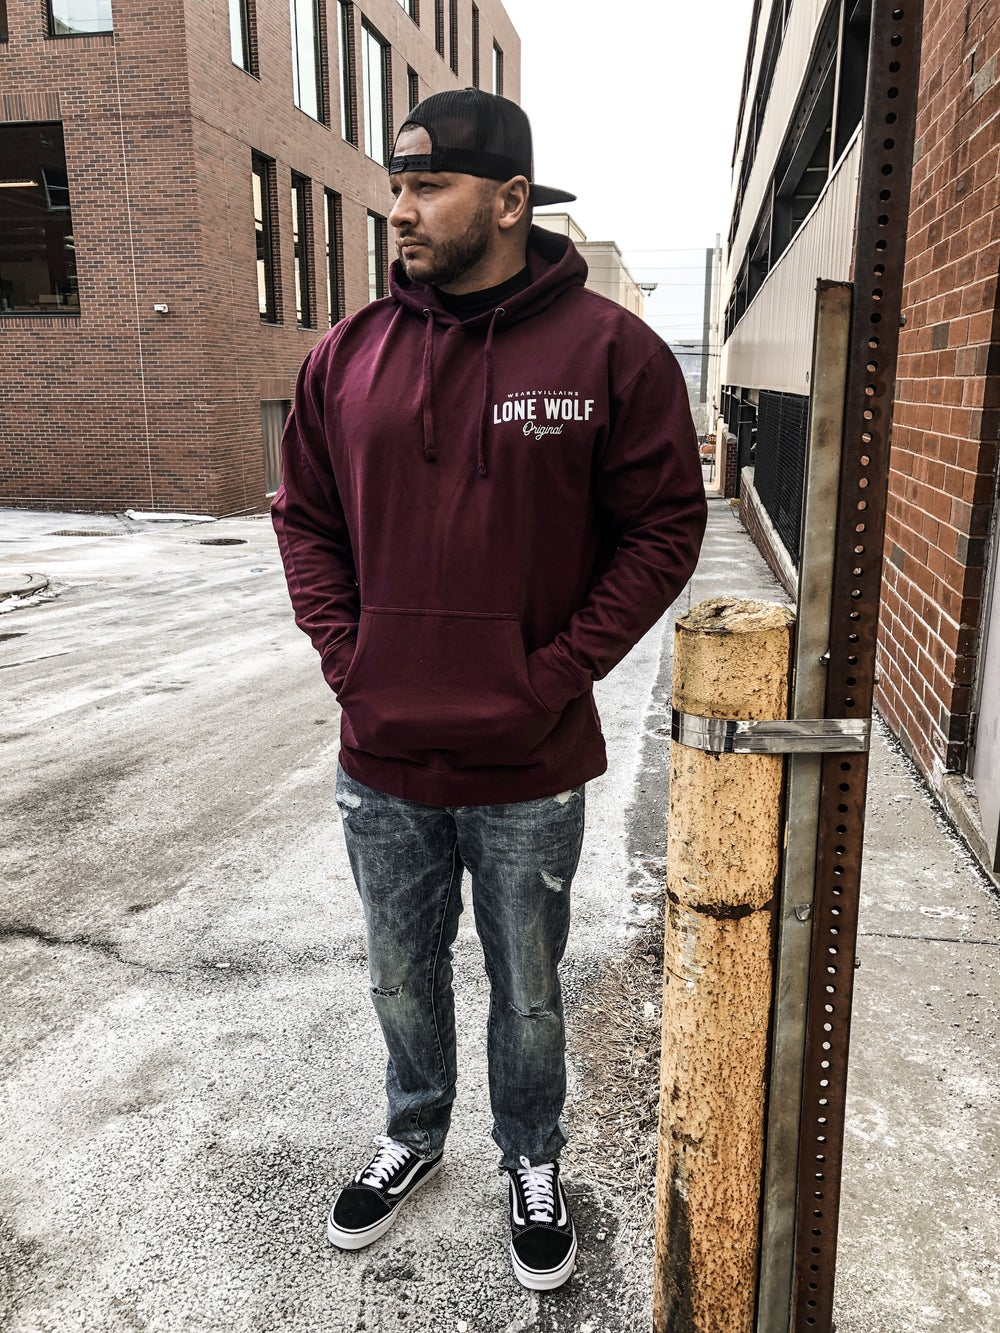 Image of Lone Wolf maroon WEAREVILLAINS